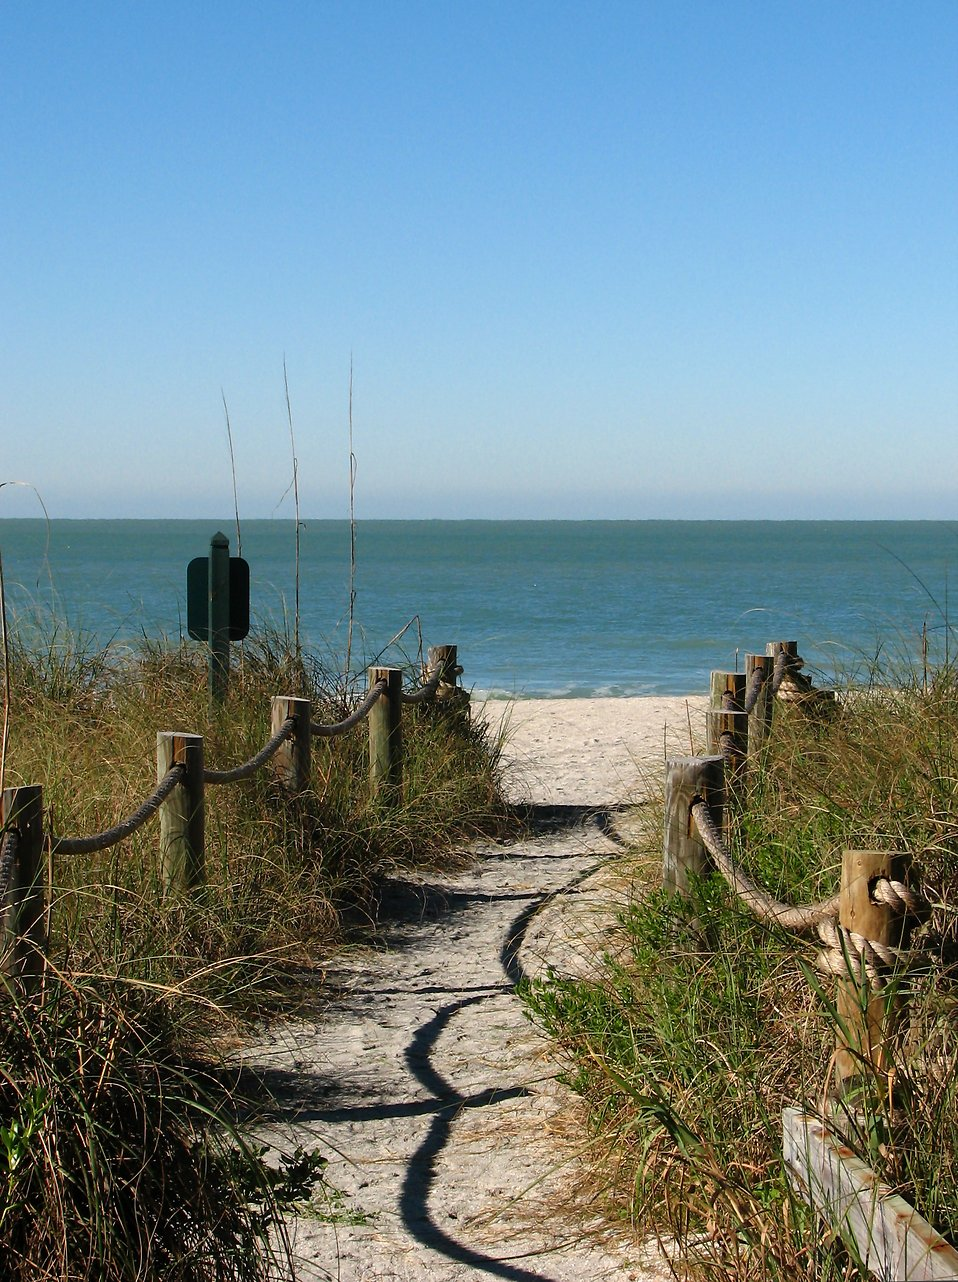 A path heading to the beach : Free Stock Photo